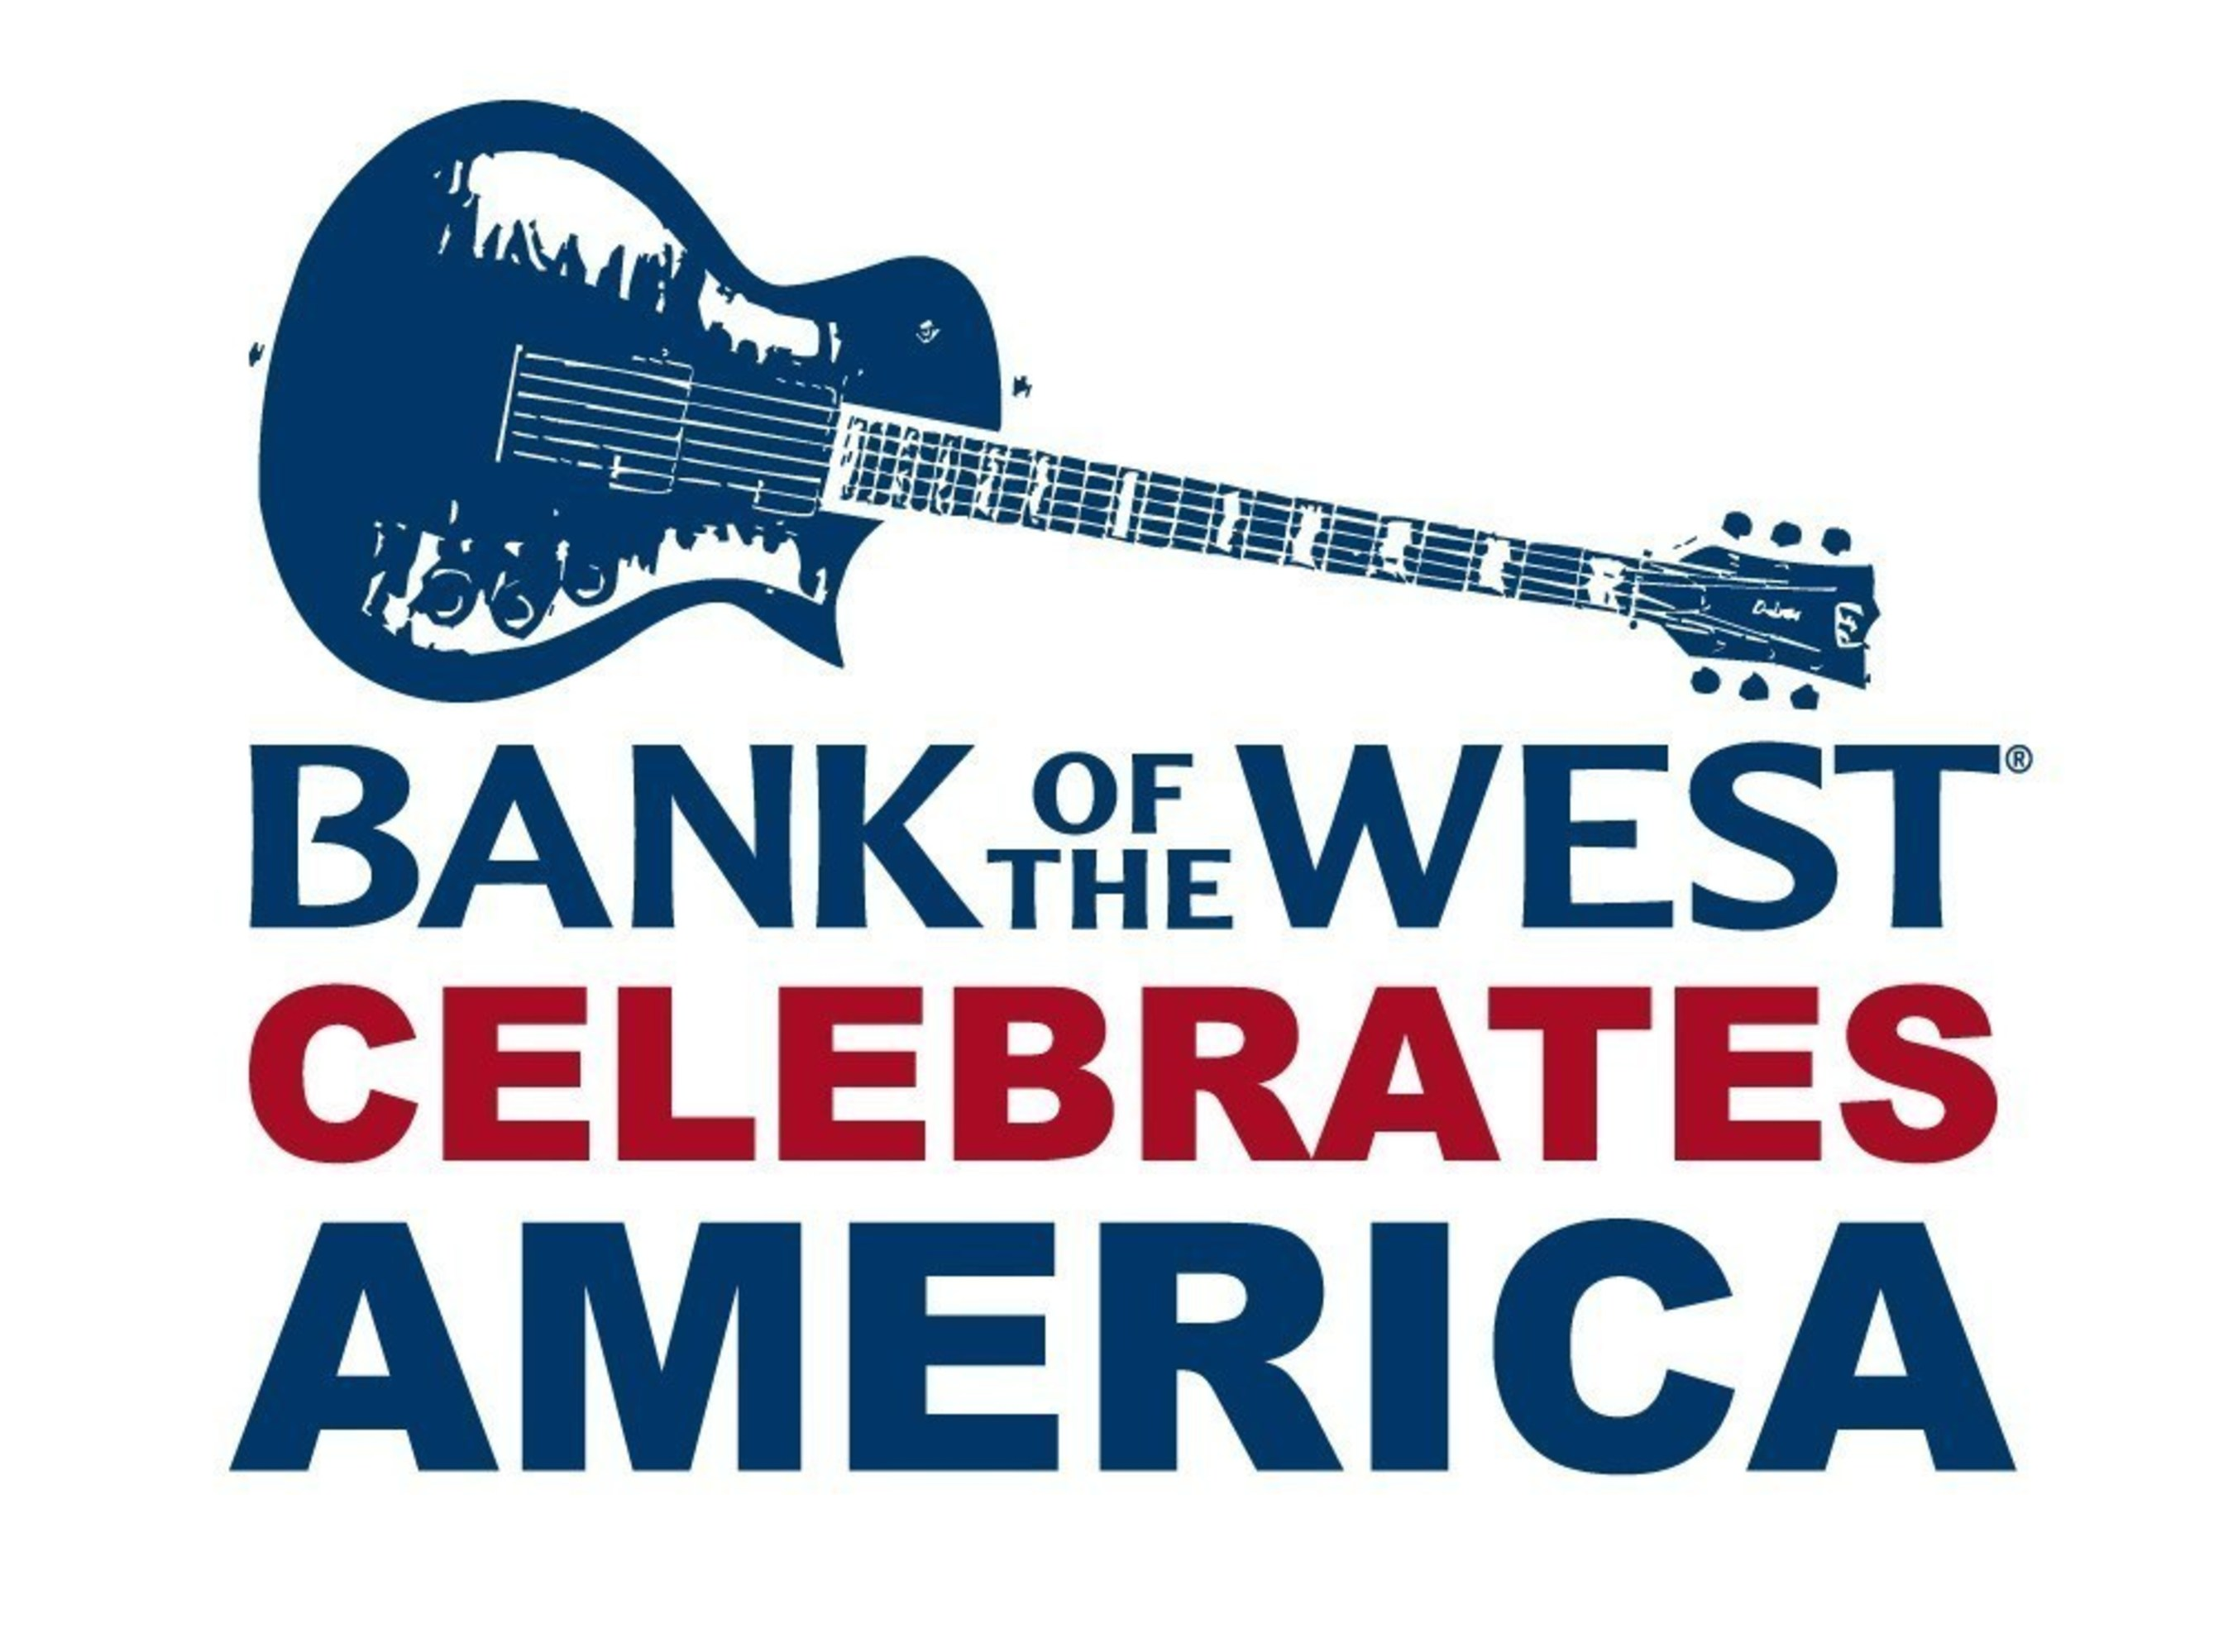 Bank of the West Celebrates America